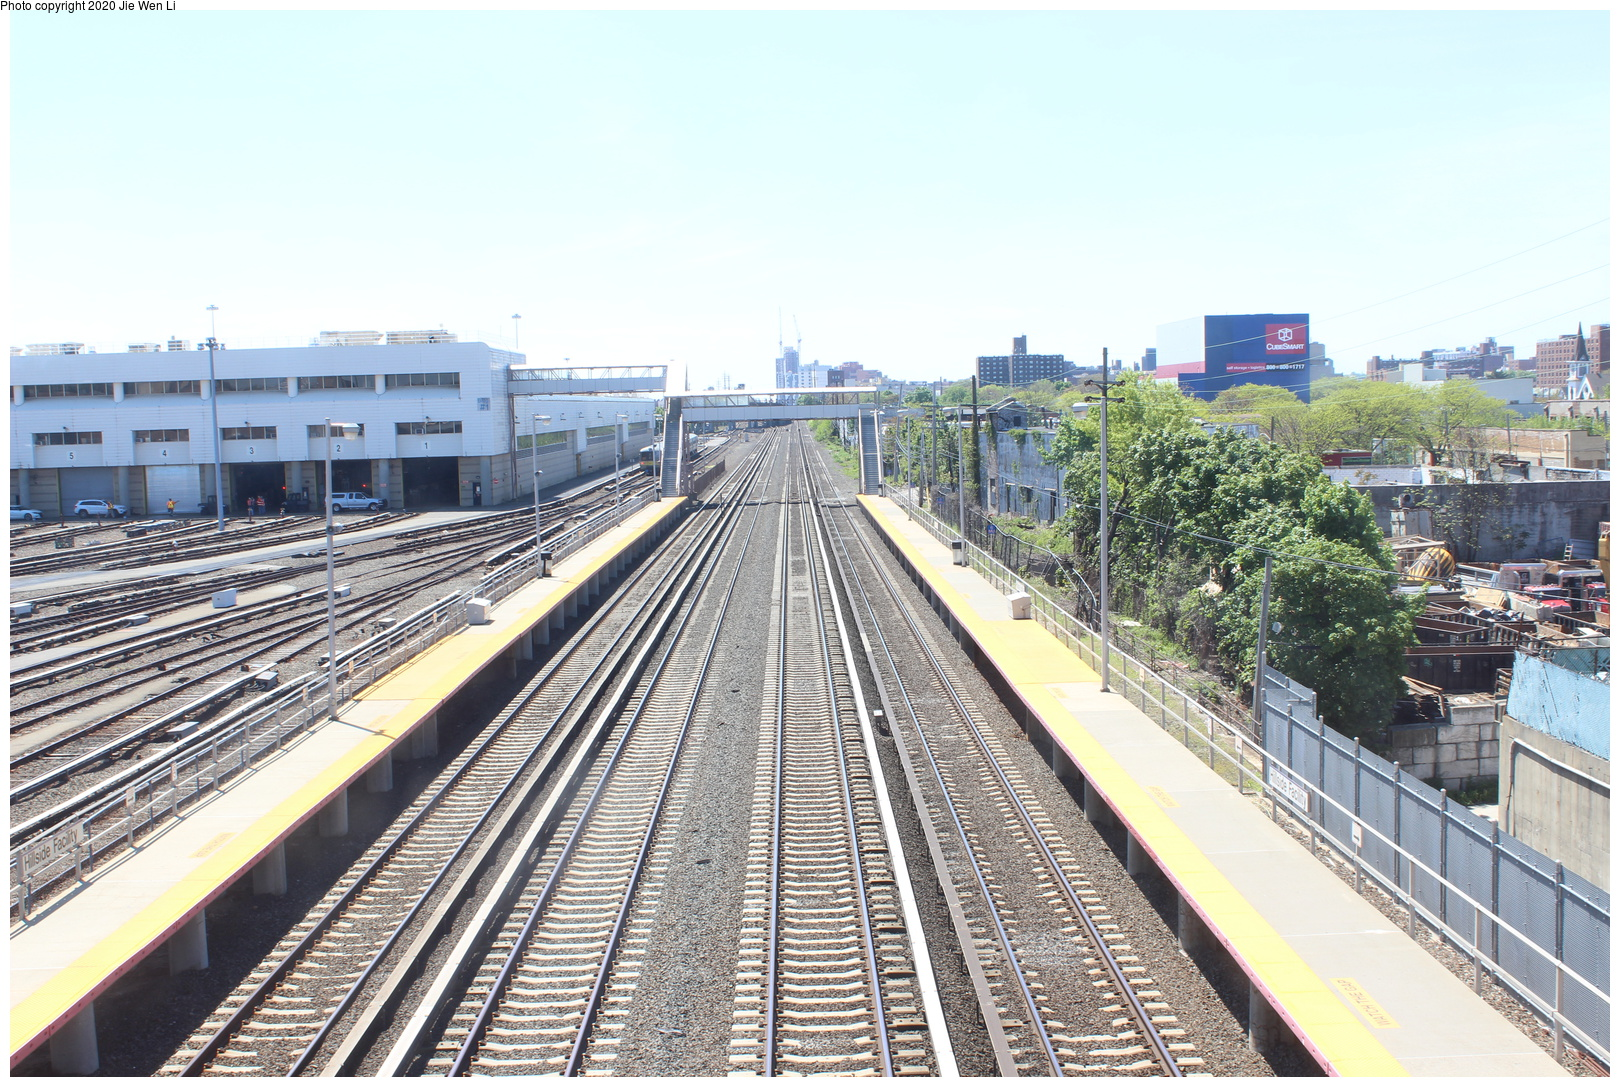 (213k, 1026x1044)<br><b>Country:</b> United States<br><b>City:</b> New York<br><b>System:</b> New York City Transit<br><b>Location:</b> East 180th Street Yard<br><b>Car:</b> Low-V 4932/5324 <br><b>Photo by:</b> Joel Shanus<br><b>Viewed (this week/total):</b> 0 / 710